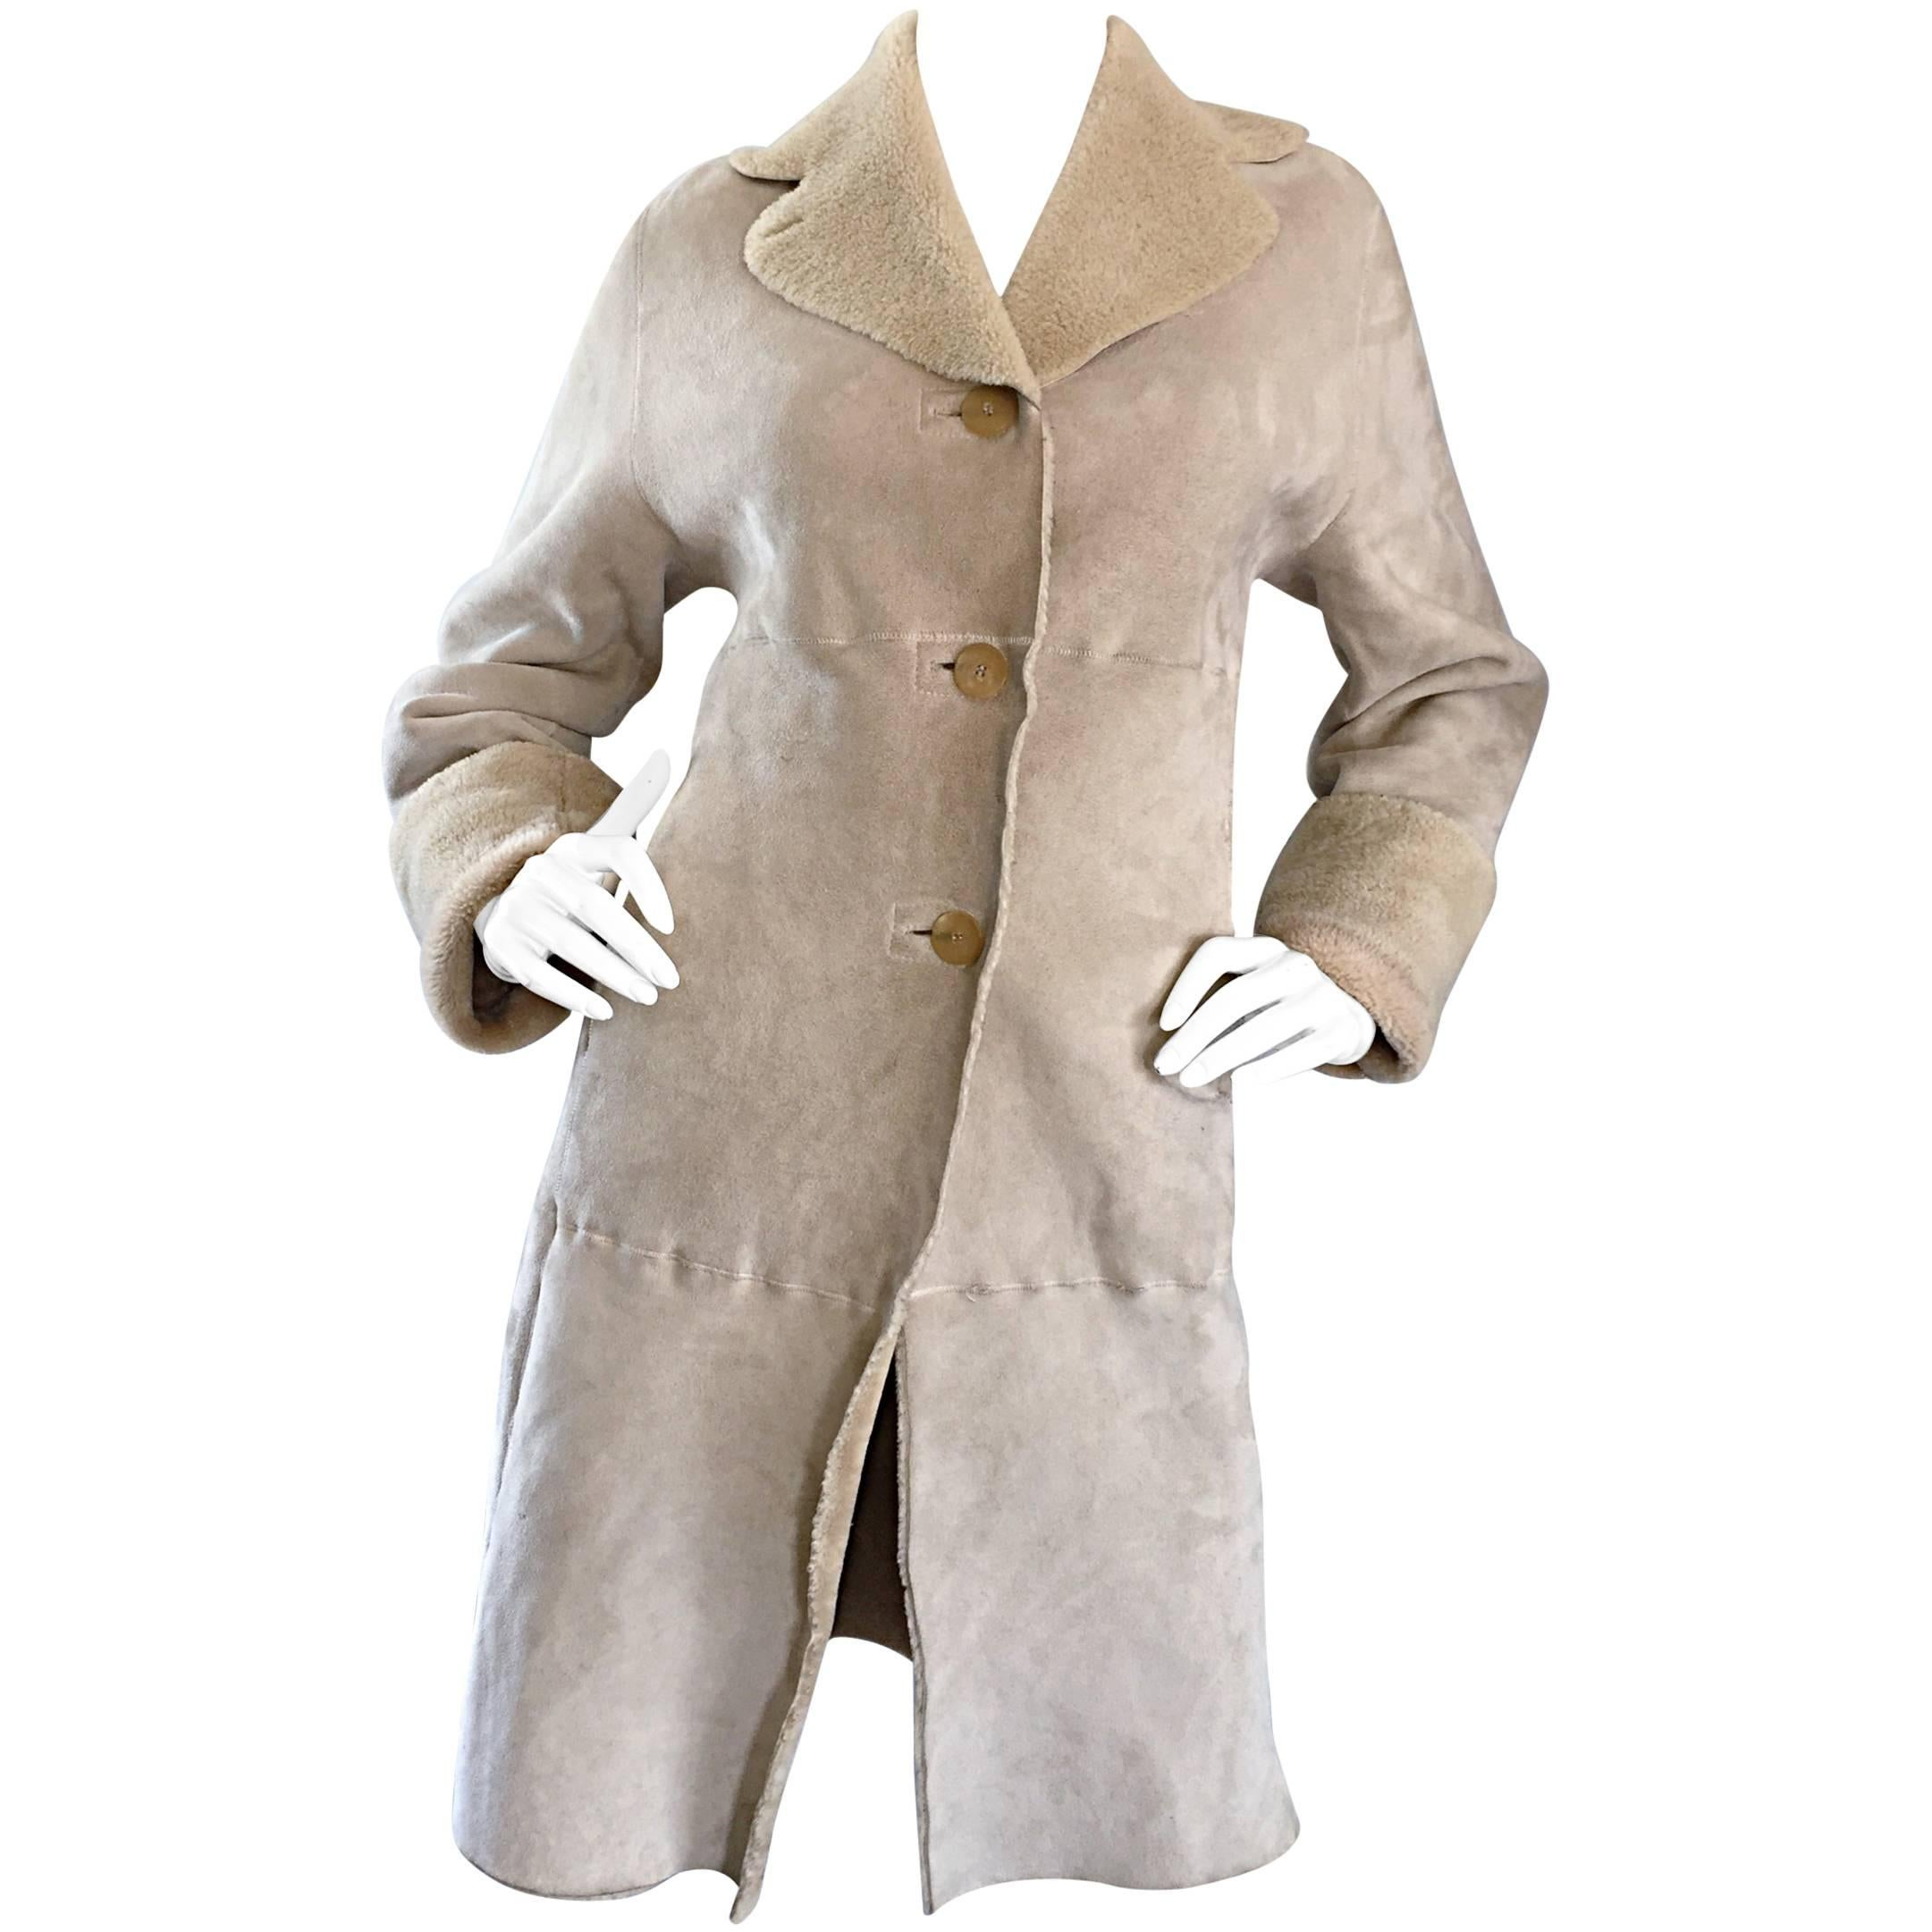 0f0f3450edc9d Vintage Giorgio Armani Collezioni Ivory Beige Perforated Leather Trench  Jacket For Sale at 1stdibs